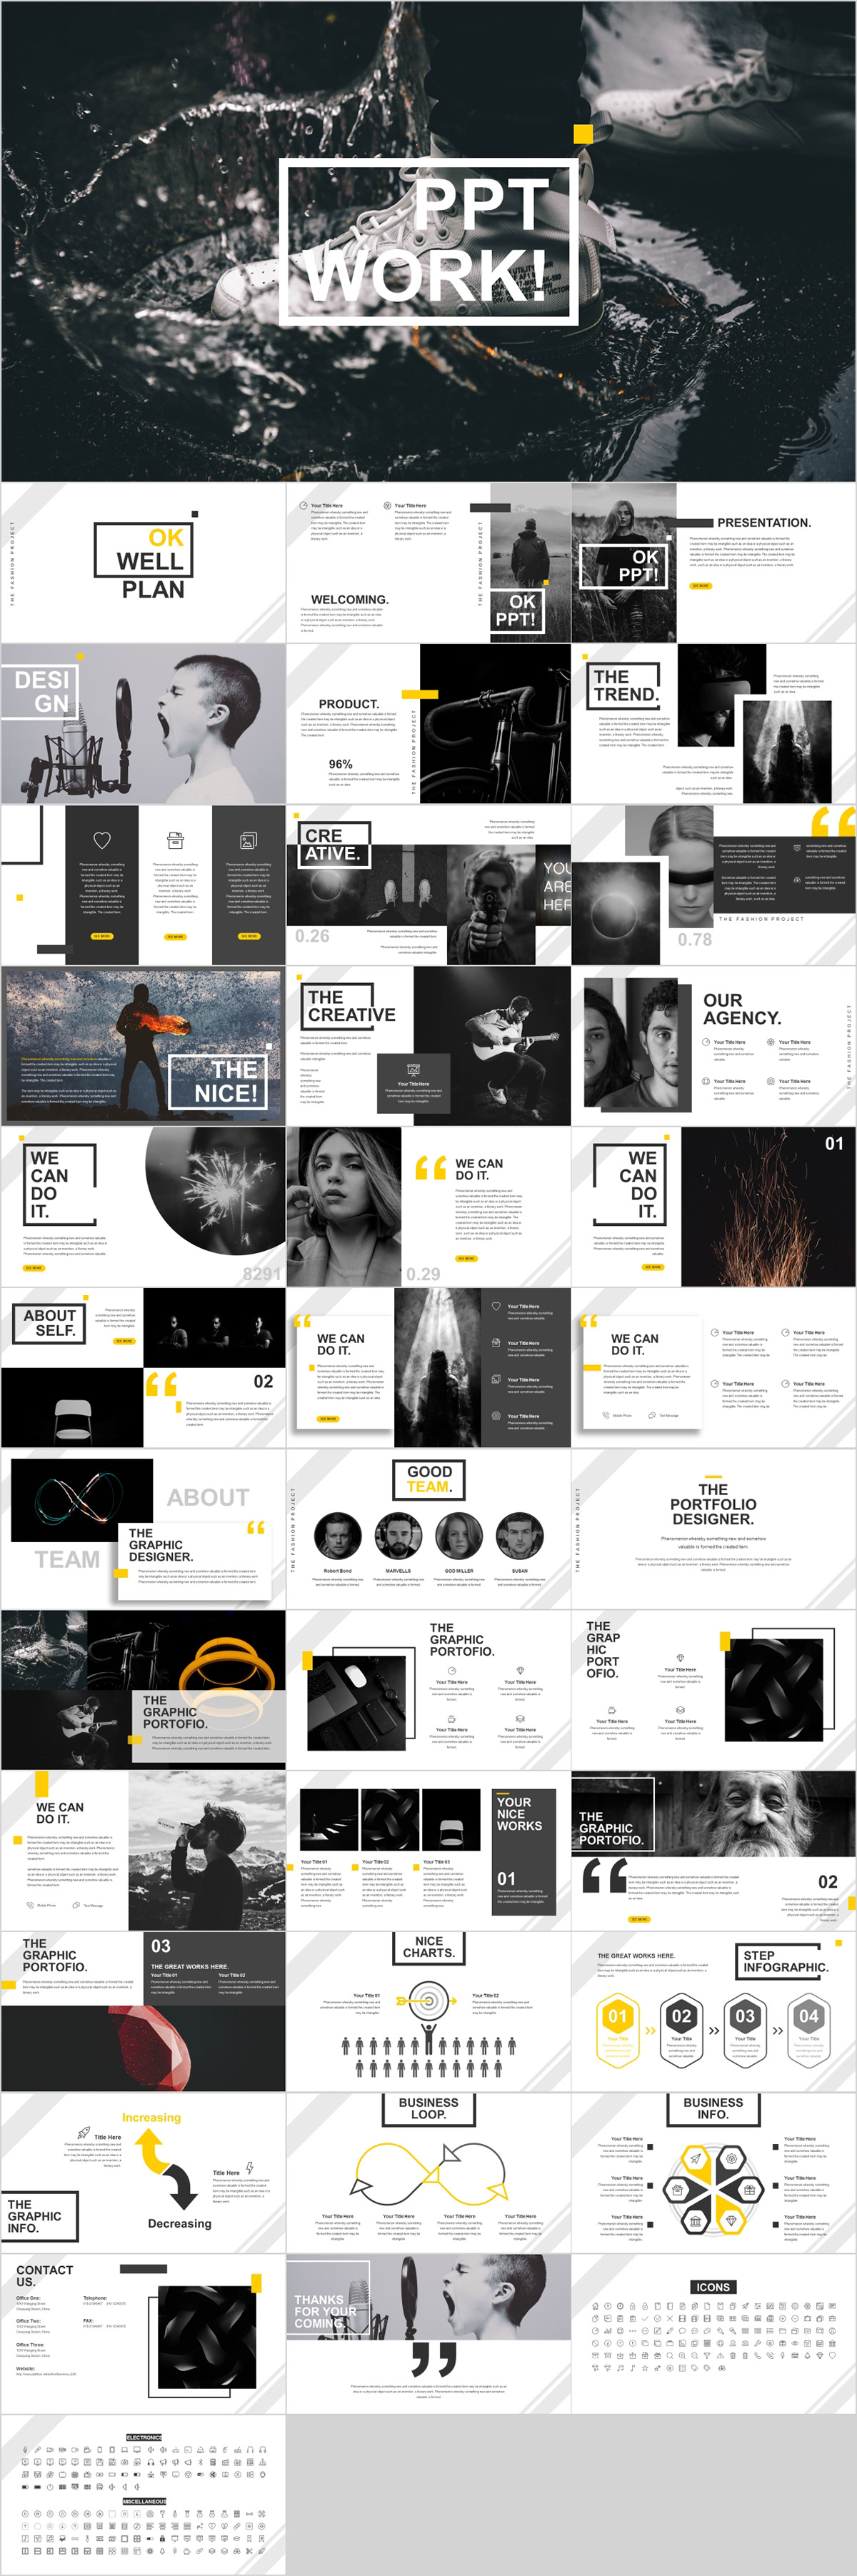 best company introduction powerpoint template on behance